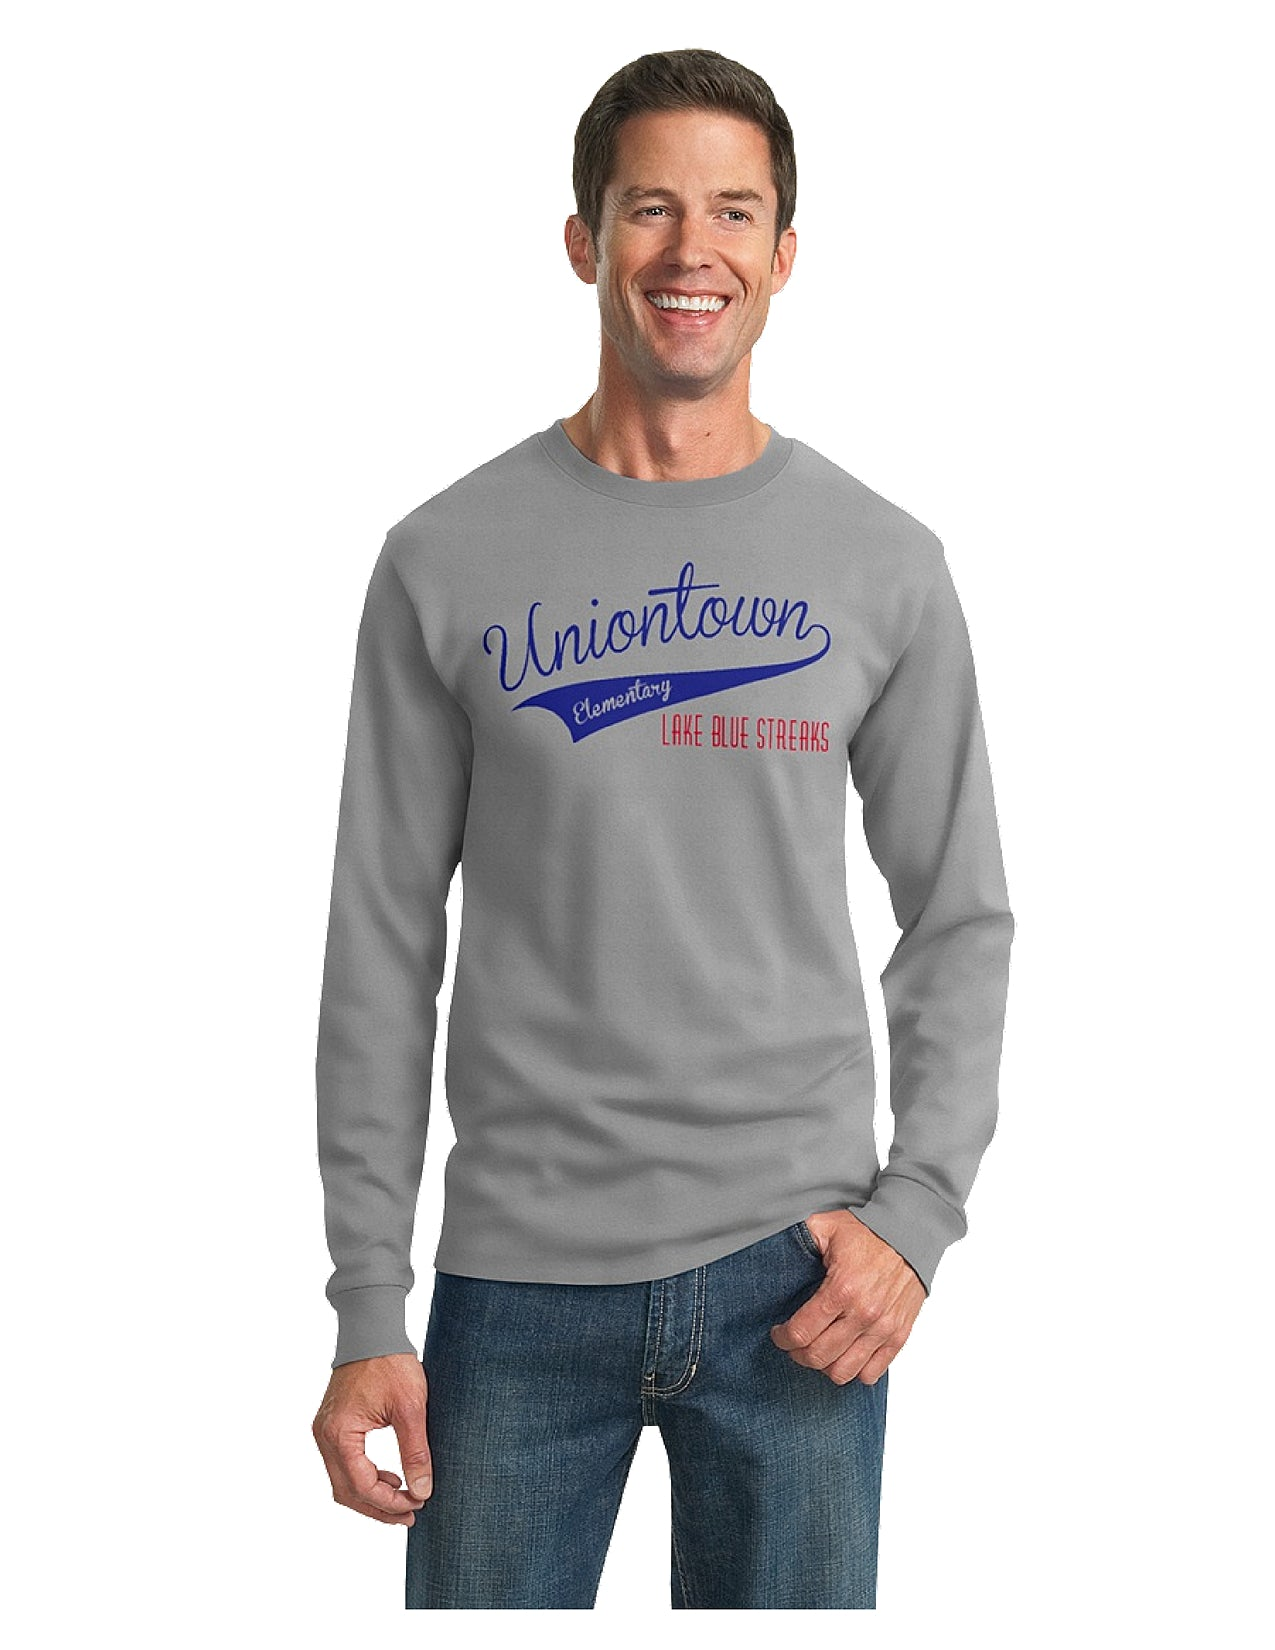 Dry-Power, Poly Blend Long Sleeve Tee - Unisex Sizing - Uniontown Elementary